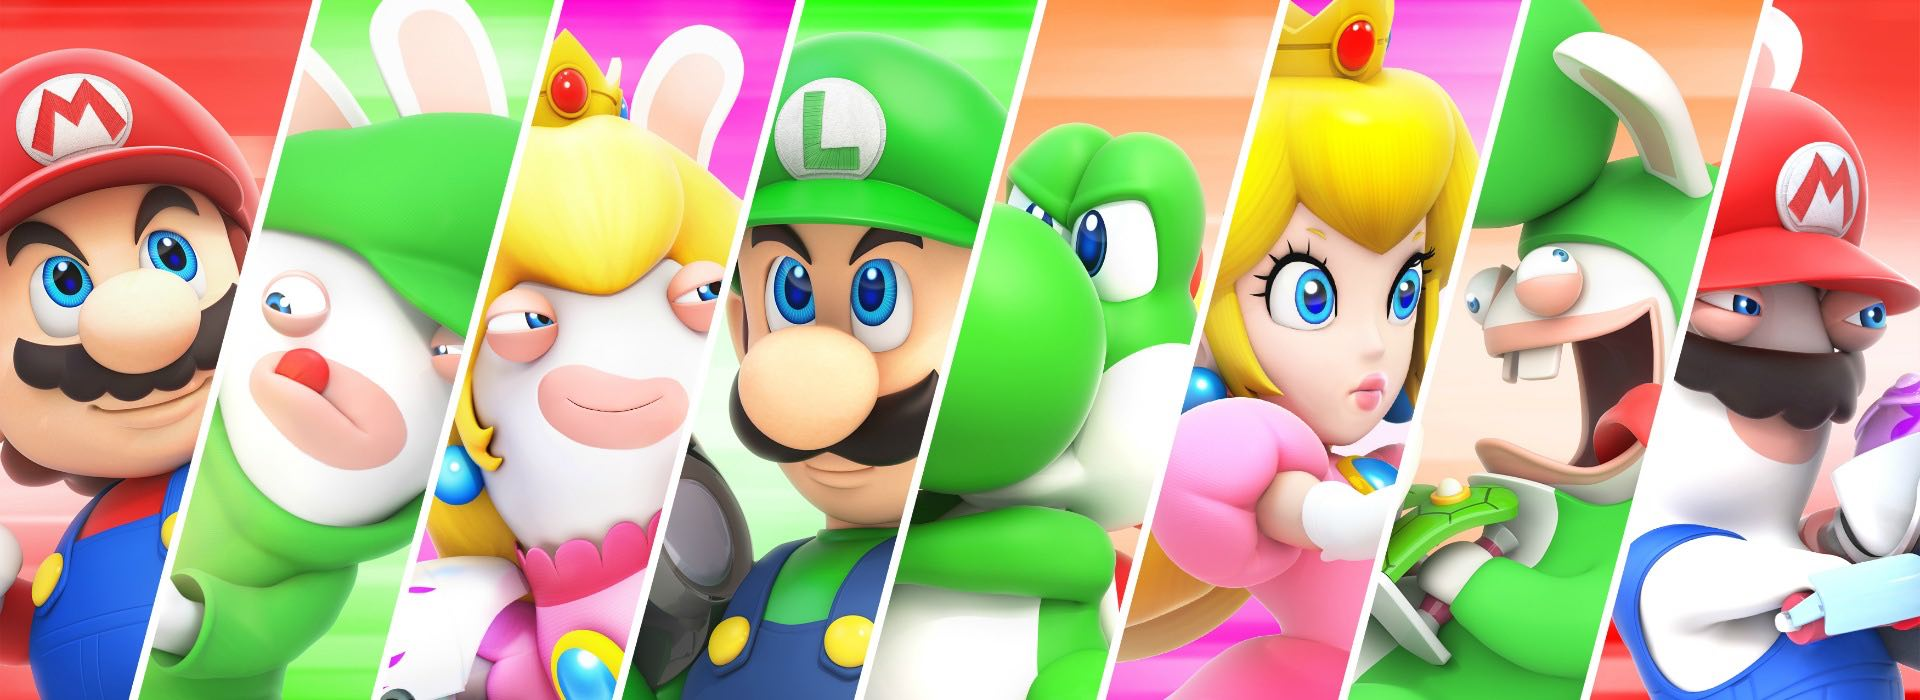 mario-rabbids-kingdom-battle-banner